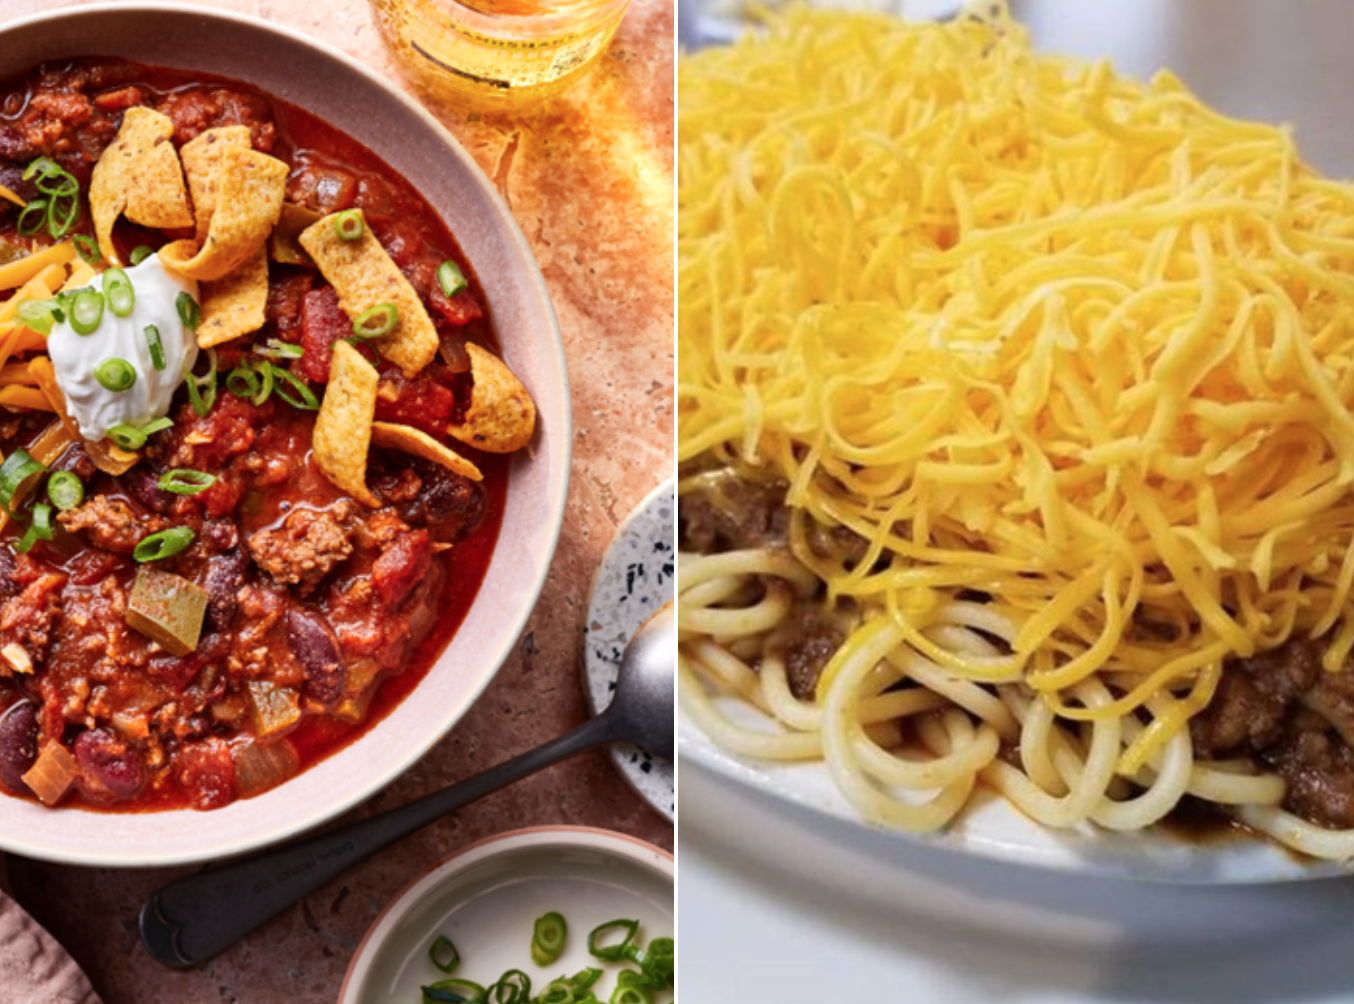 What Is Cincinnati Chili—and How Is It Different From Classic Chili?